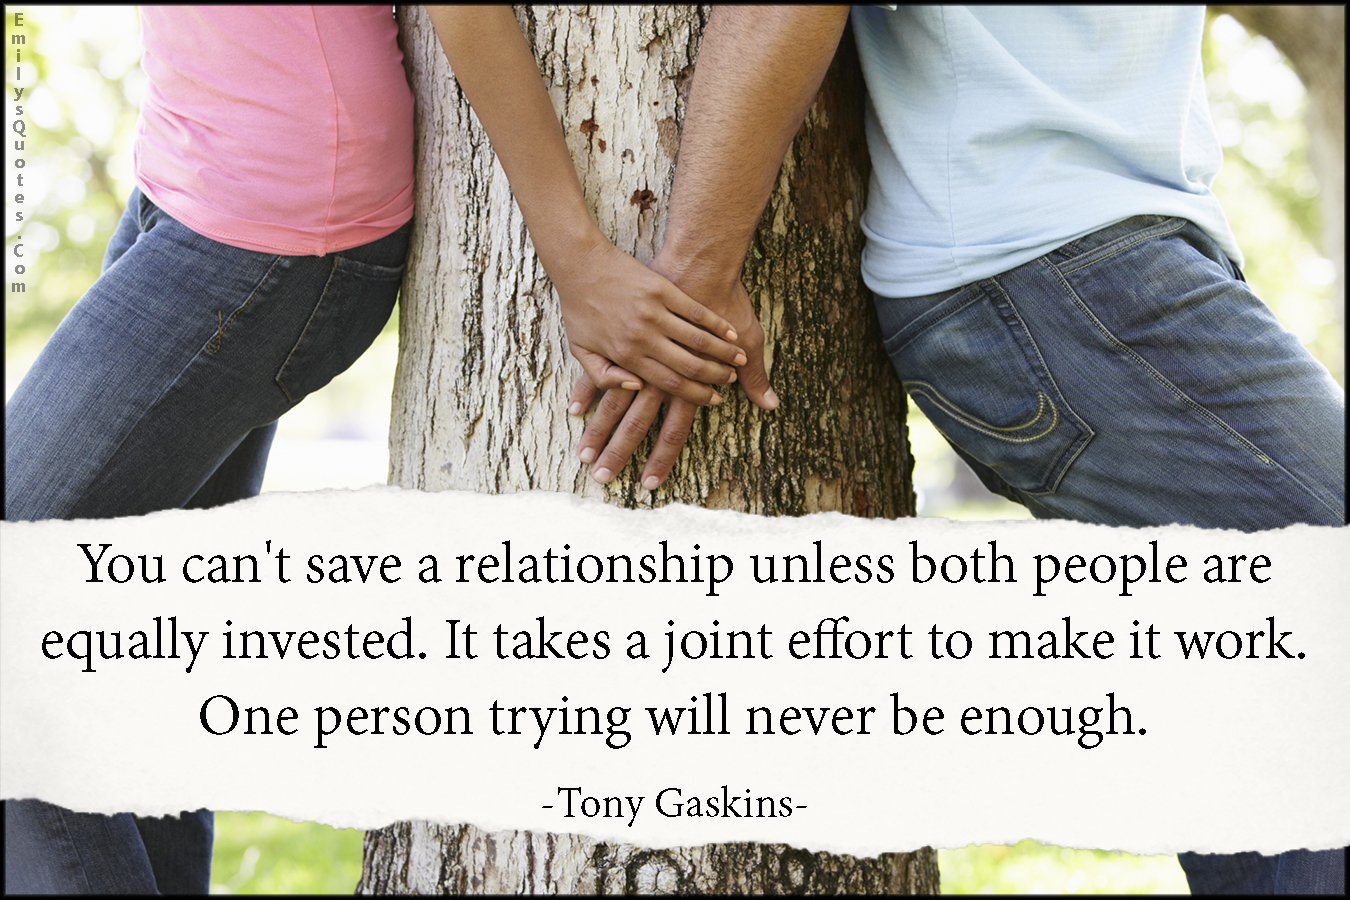 EmilysQuotes.Com - save, relationship, people, invested, work, love, caring, Tony Gaskins